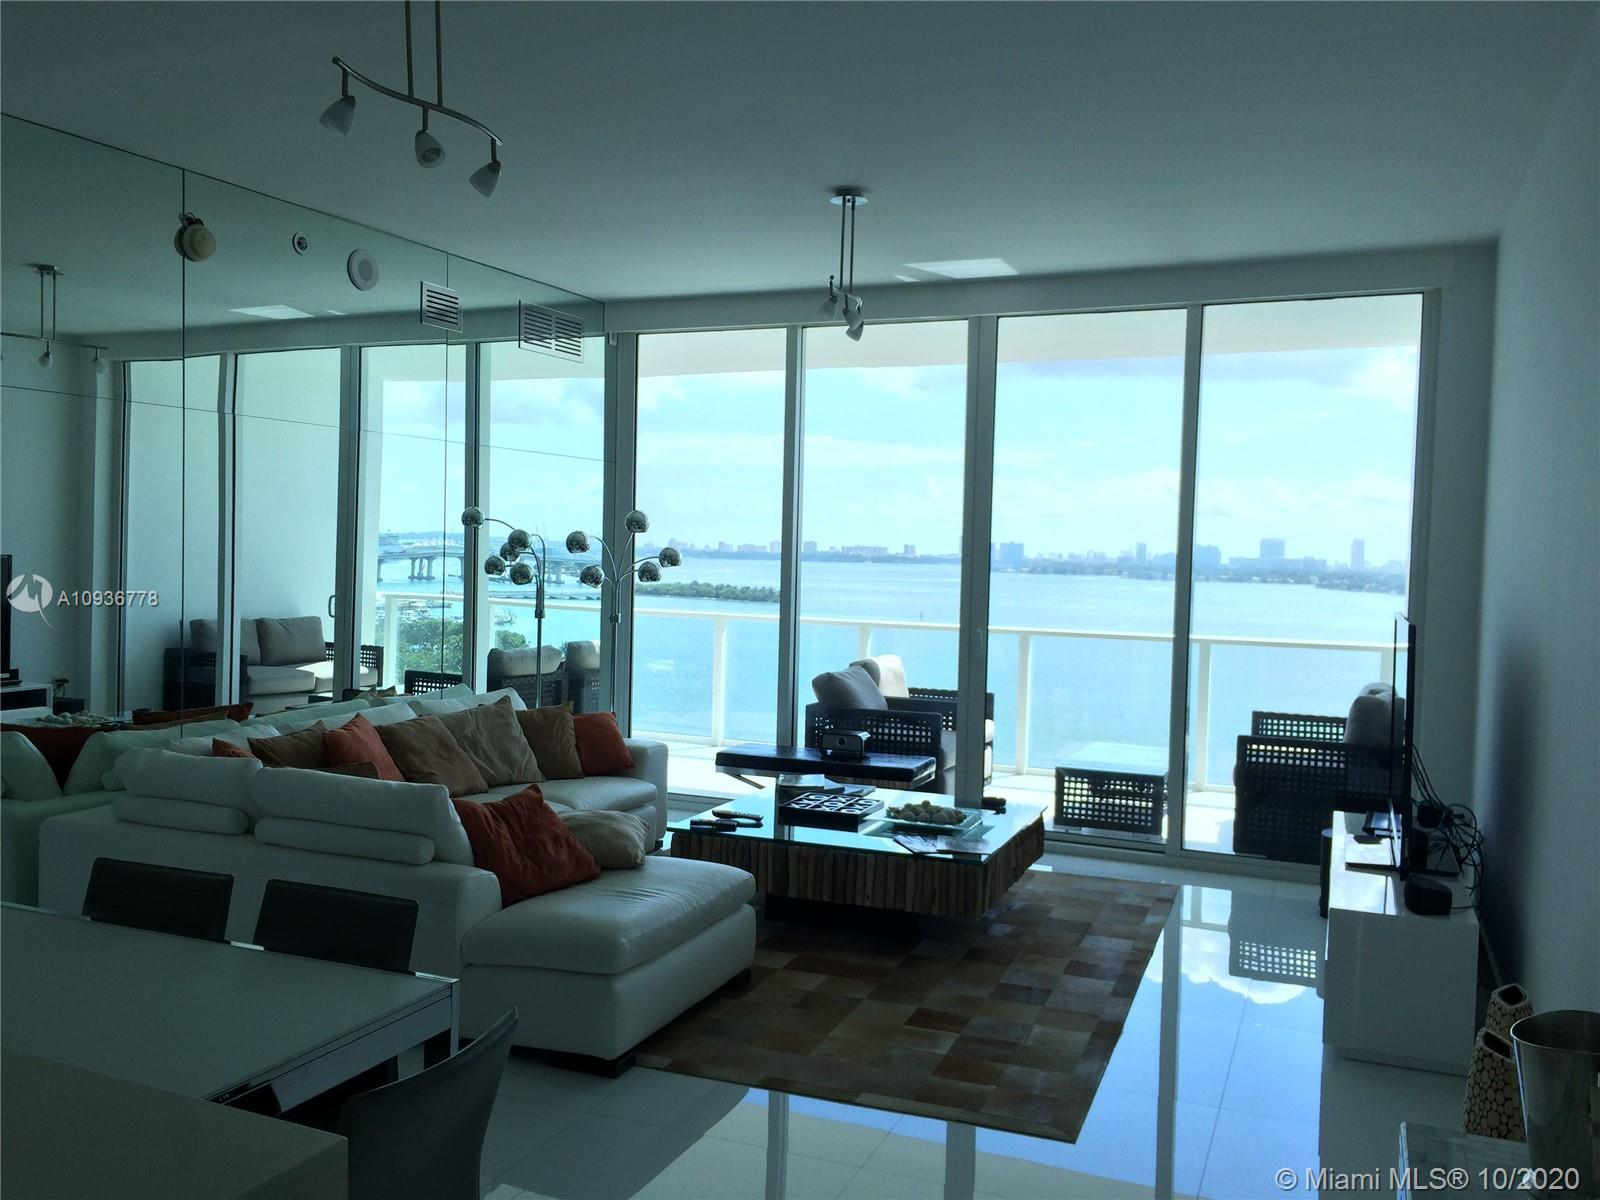 STUNNING BAY VIEWS FROM THIS 3 BED 2.5 BATH+DEN AT THE UNIQUE & RENOWNED PARAMOUNT BAY. WITH OVER 1,